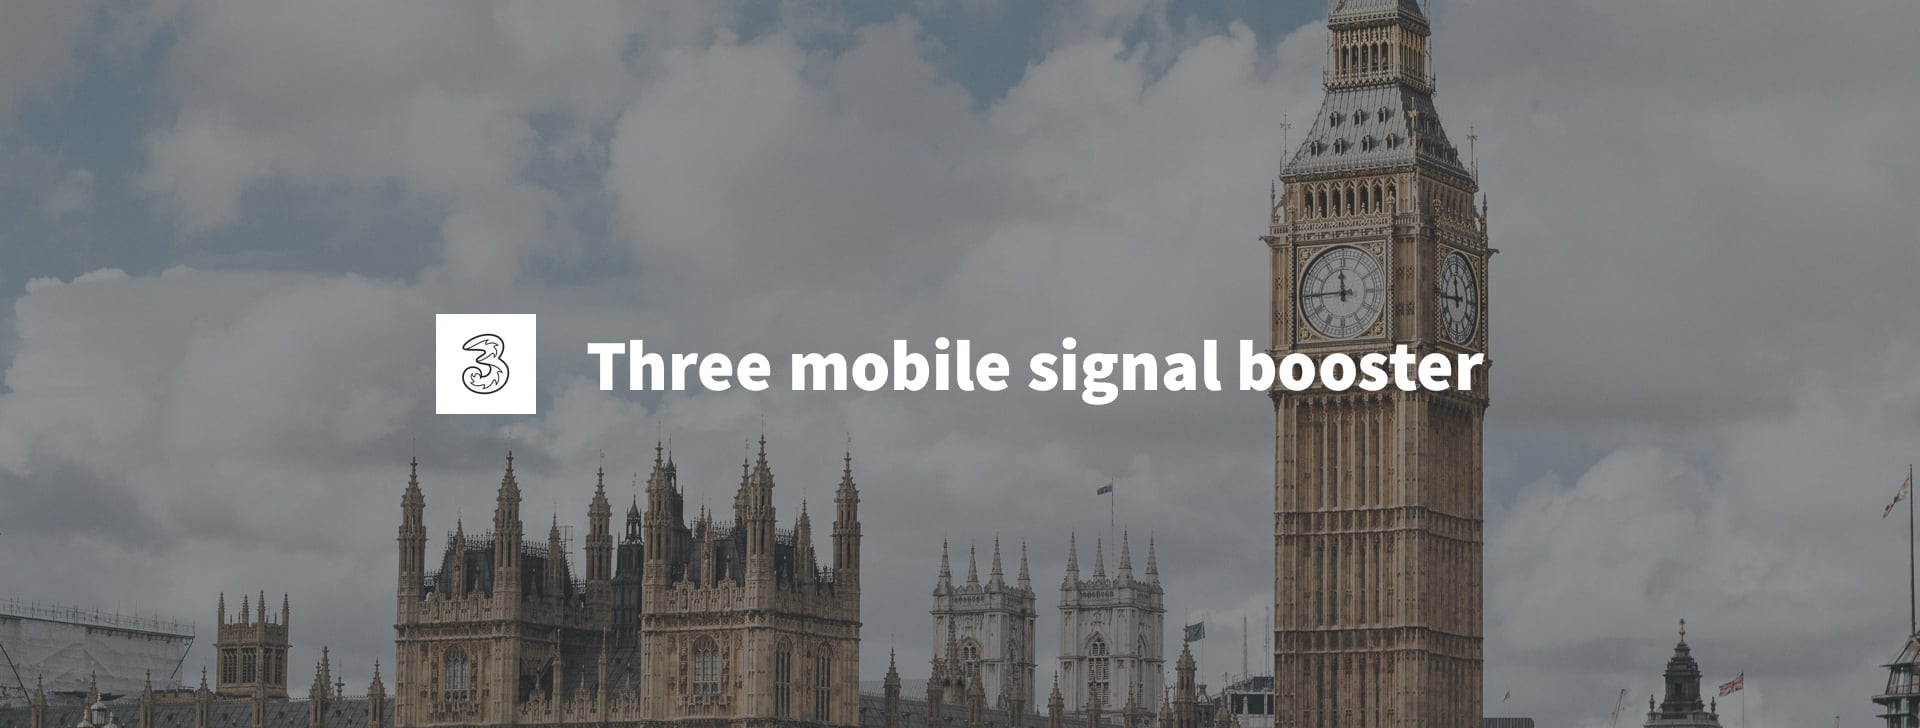 mobile phone signal booster Three